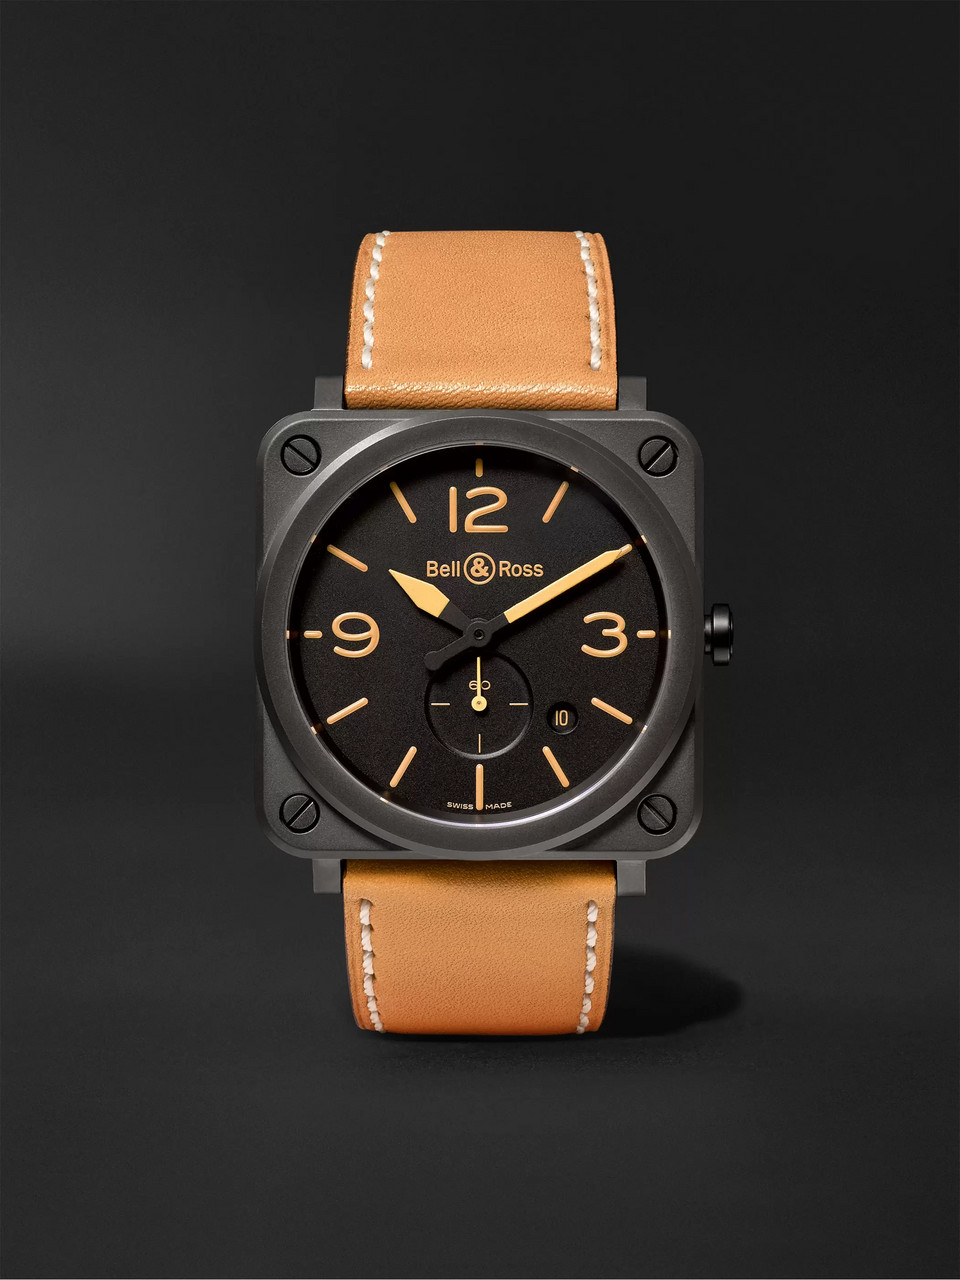 Bell & Ross BR S Heritage 39mm Ceramic and Leather Watch